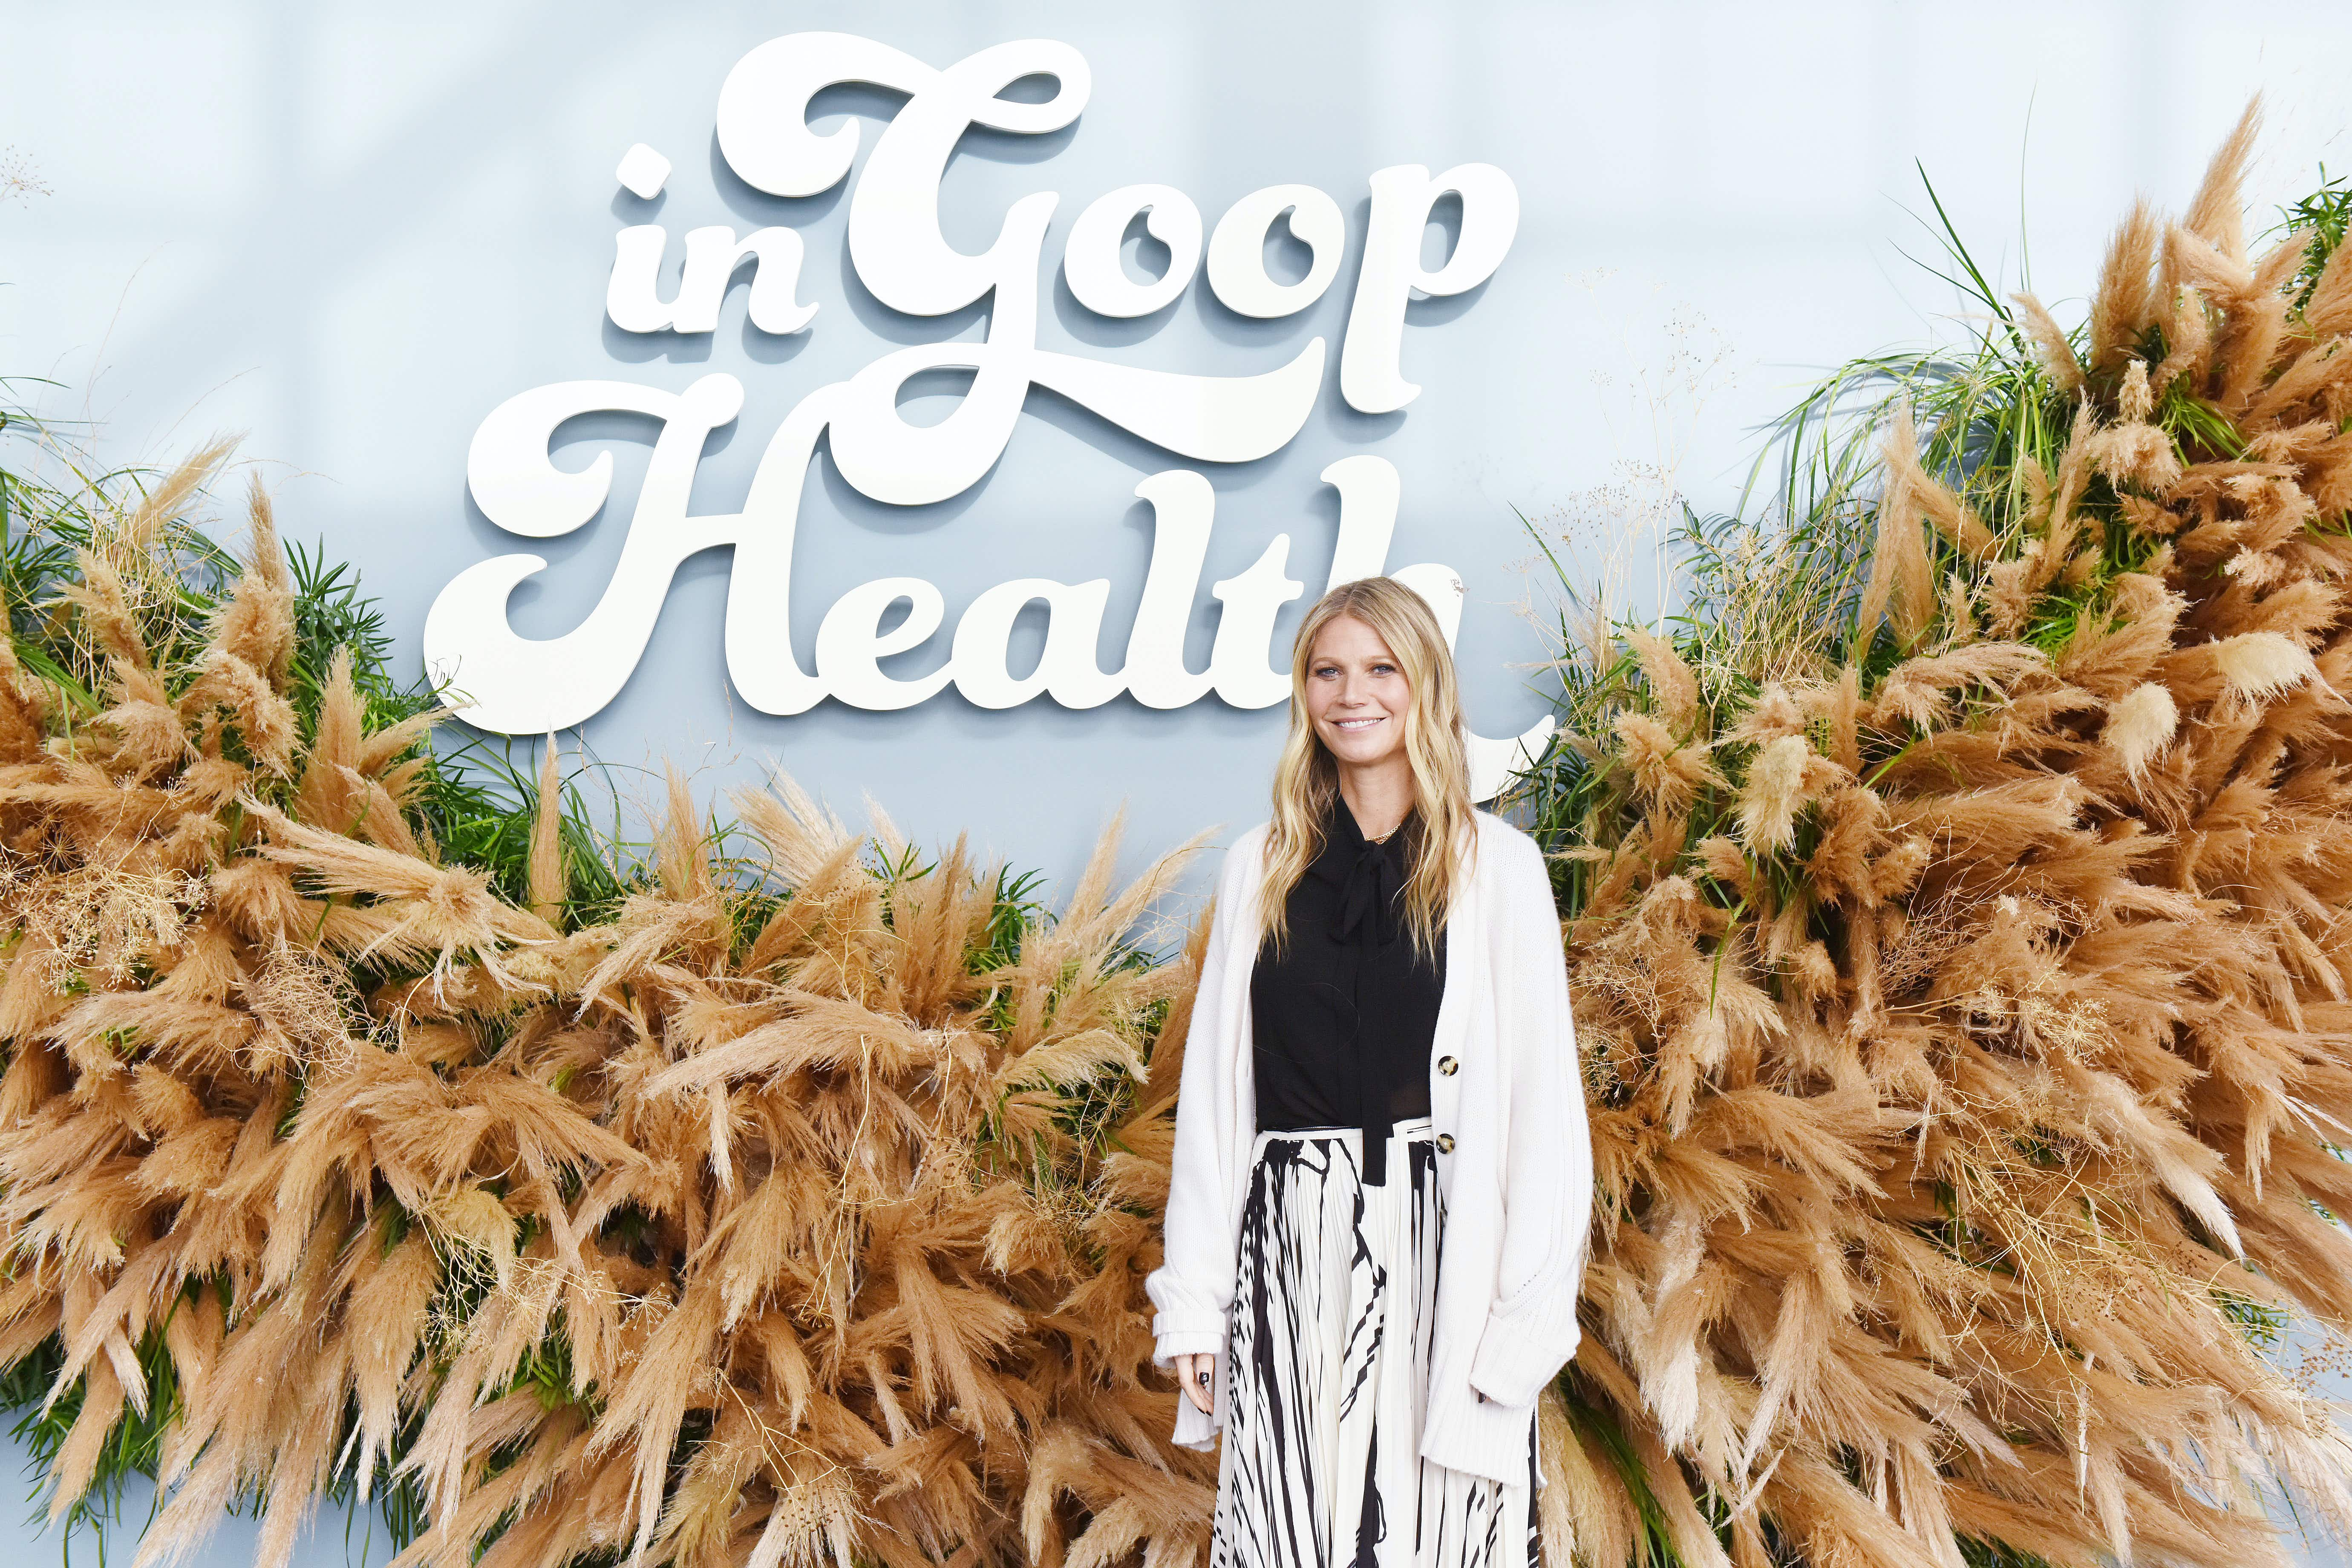 Gwyneth Paltrow to launch Goop wellness cruise in the Mediterranean